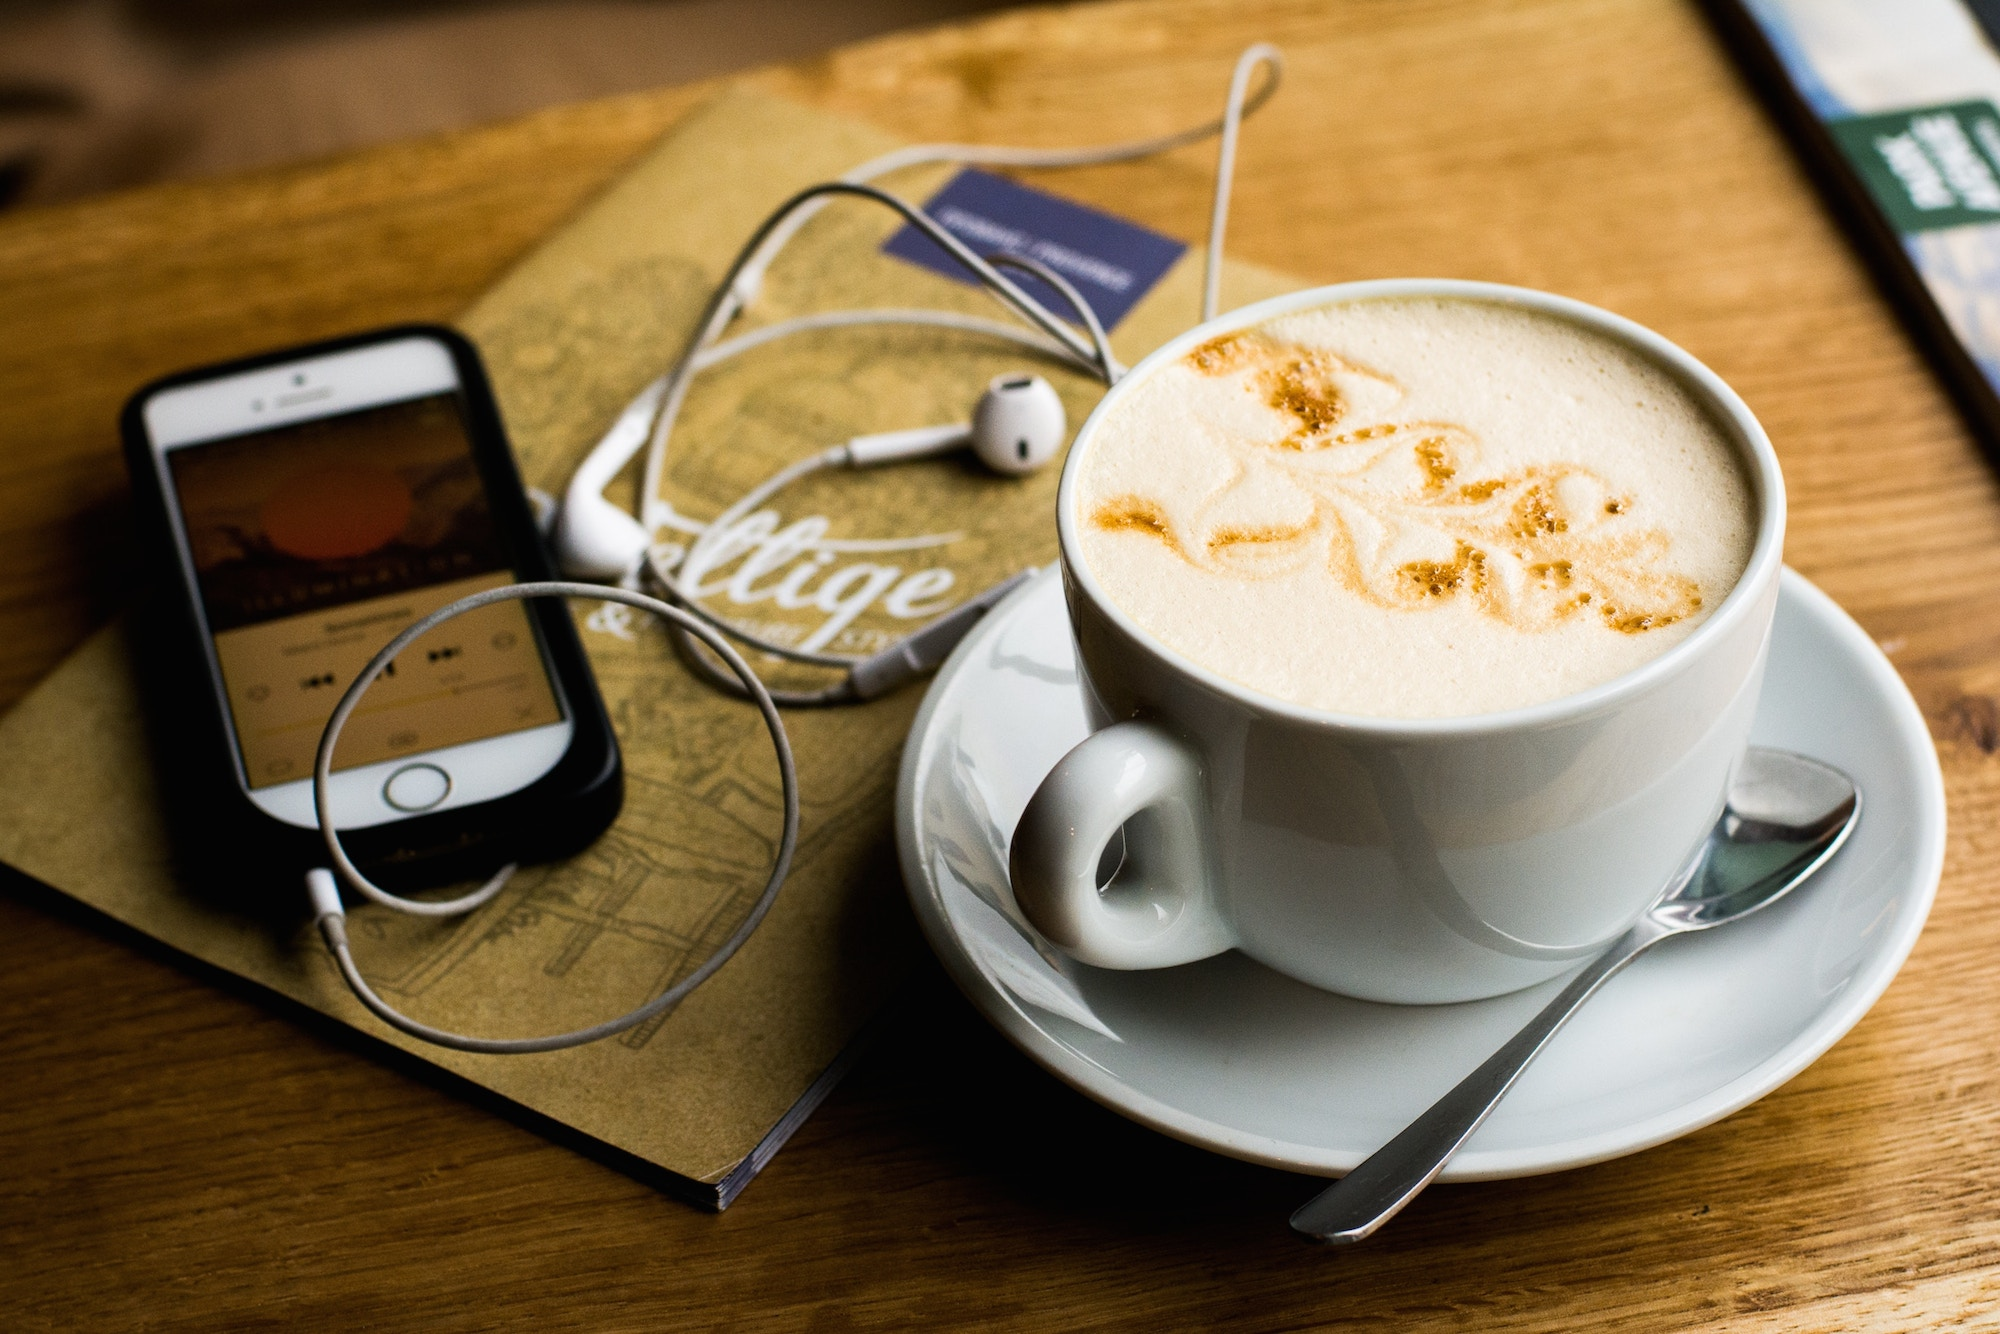 HiP Paris Blog rounds up the top French podcasts